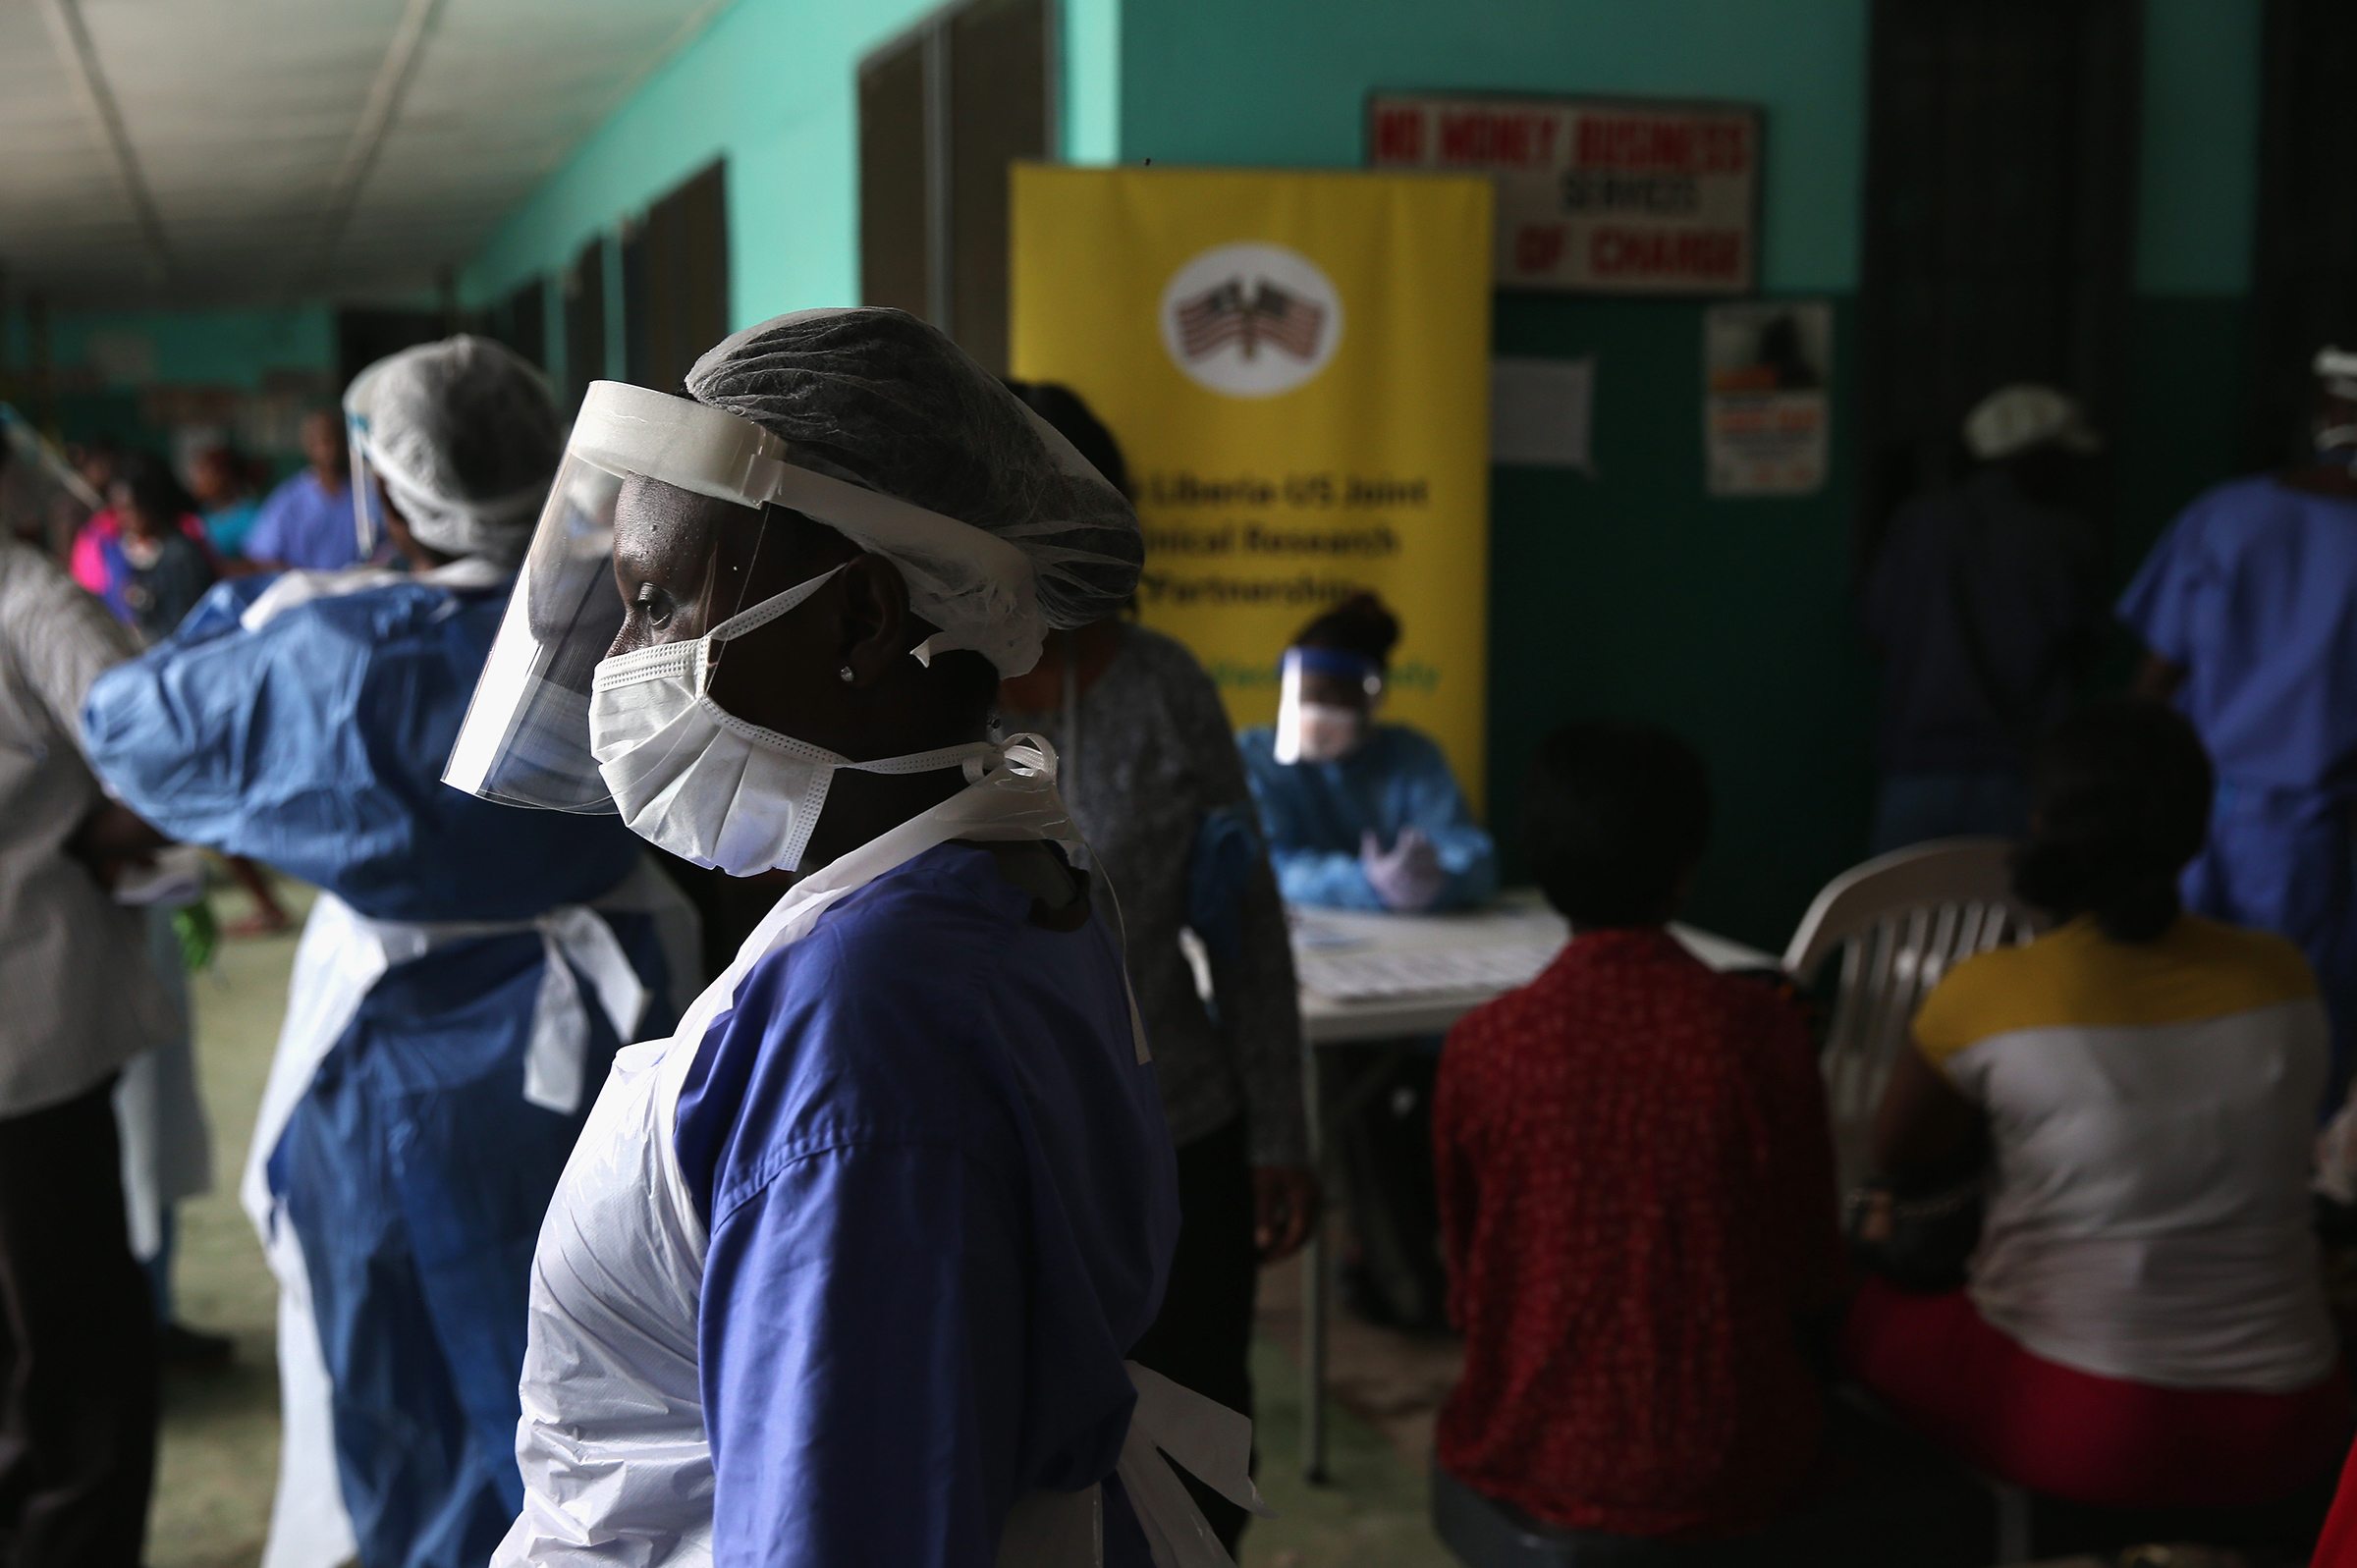 Health workers in protective clothing await patients in the outpatient lounge of Redemption Hospital, formerly an Ebola holding center, on Feb. 2, 2015 in Monrovia, Liberia.